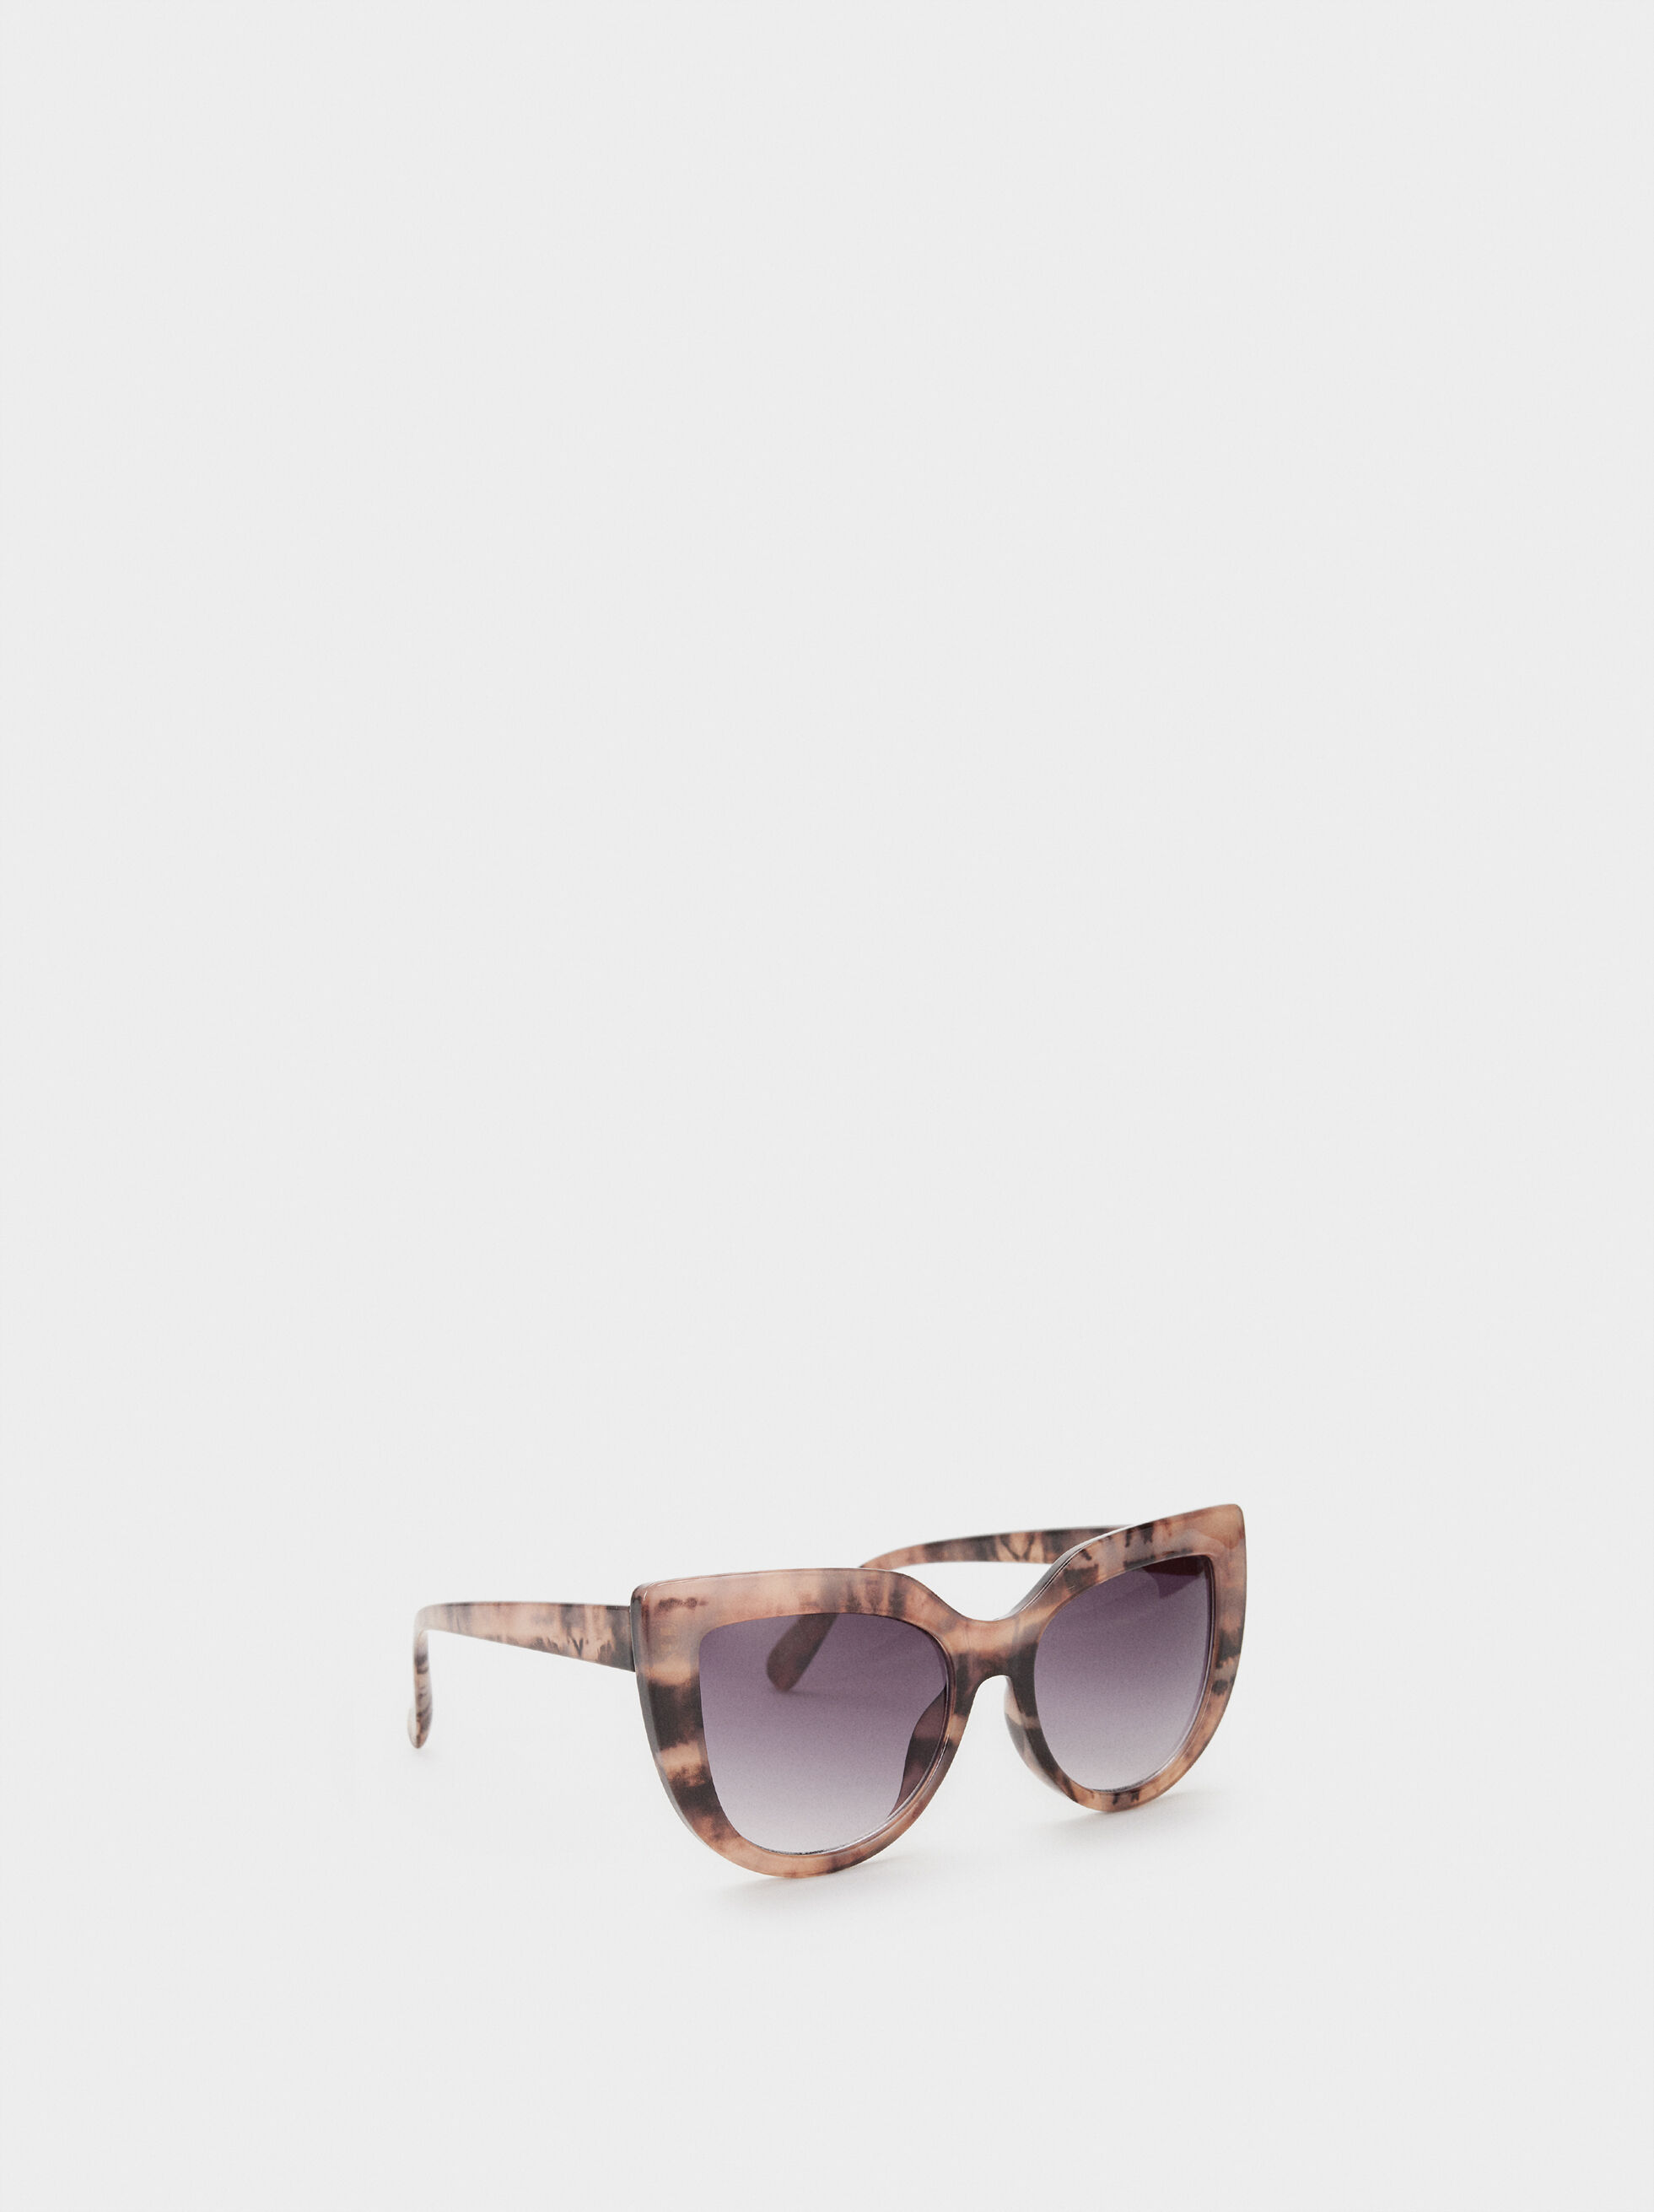 Resin Sunglasses, Pink, hi-res